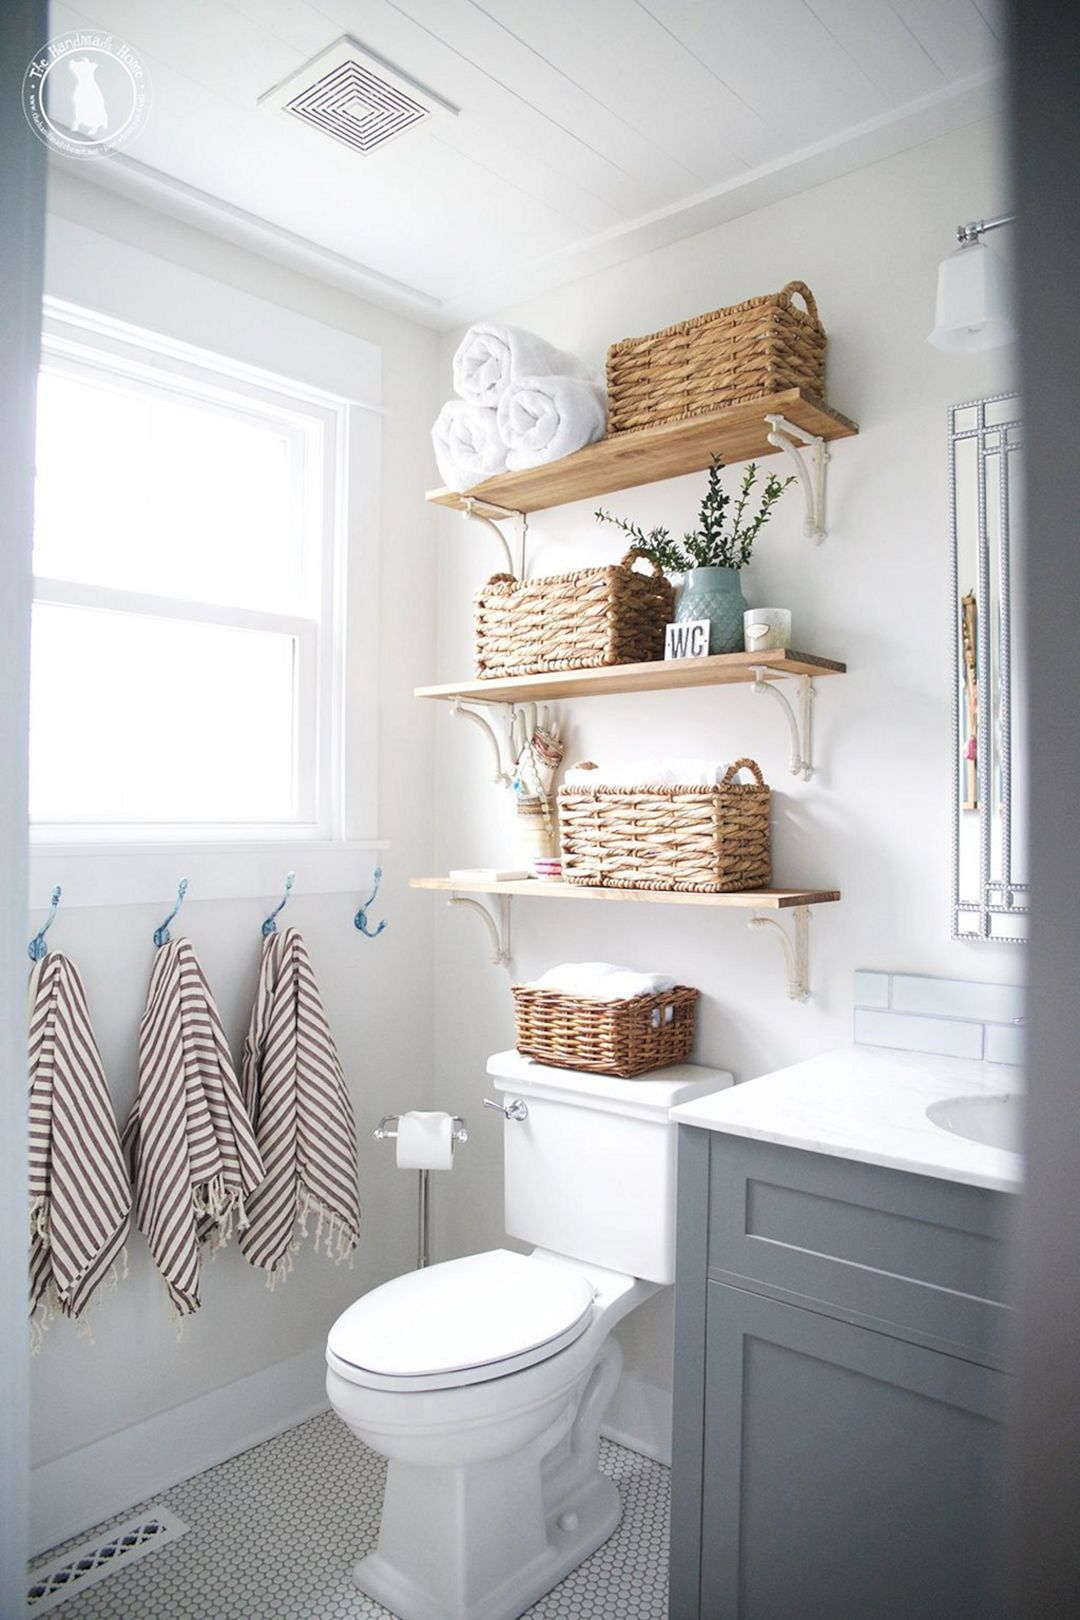 115 Extraordinary Small Bathroom Designs For Small Space 095 | Small ...